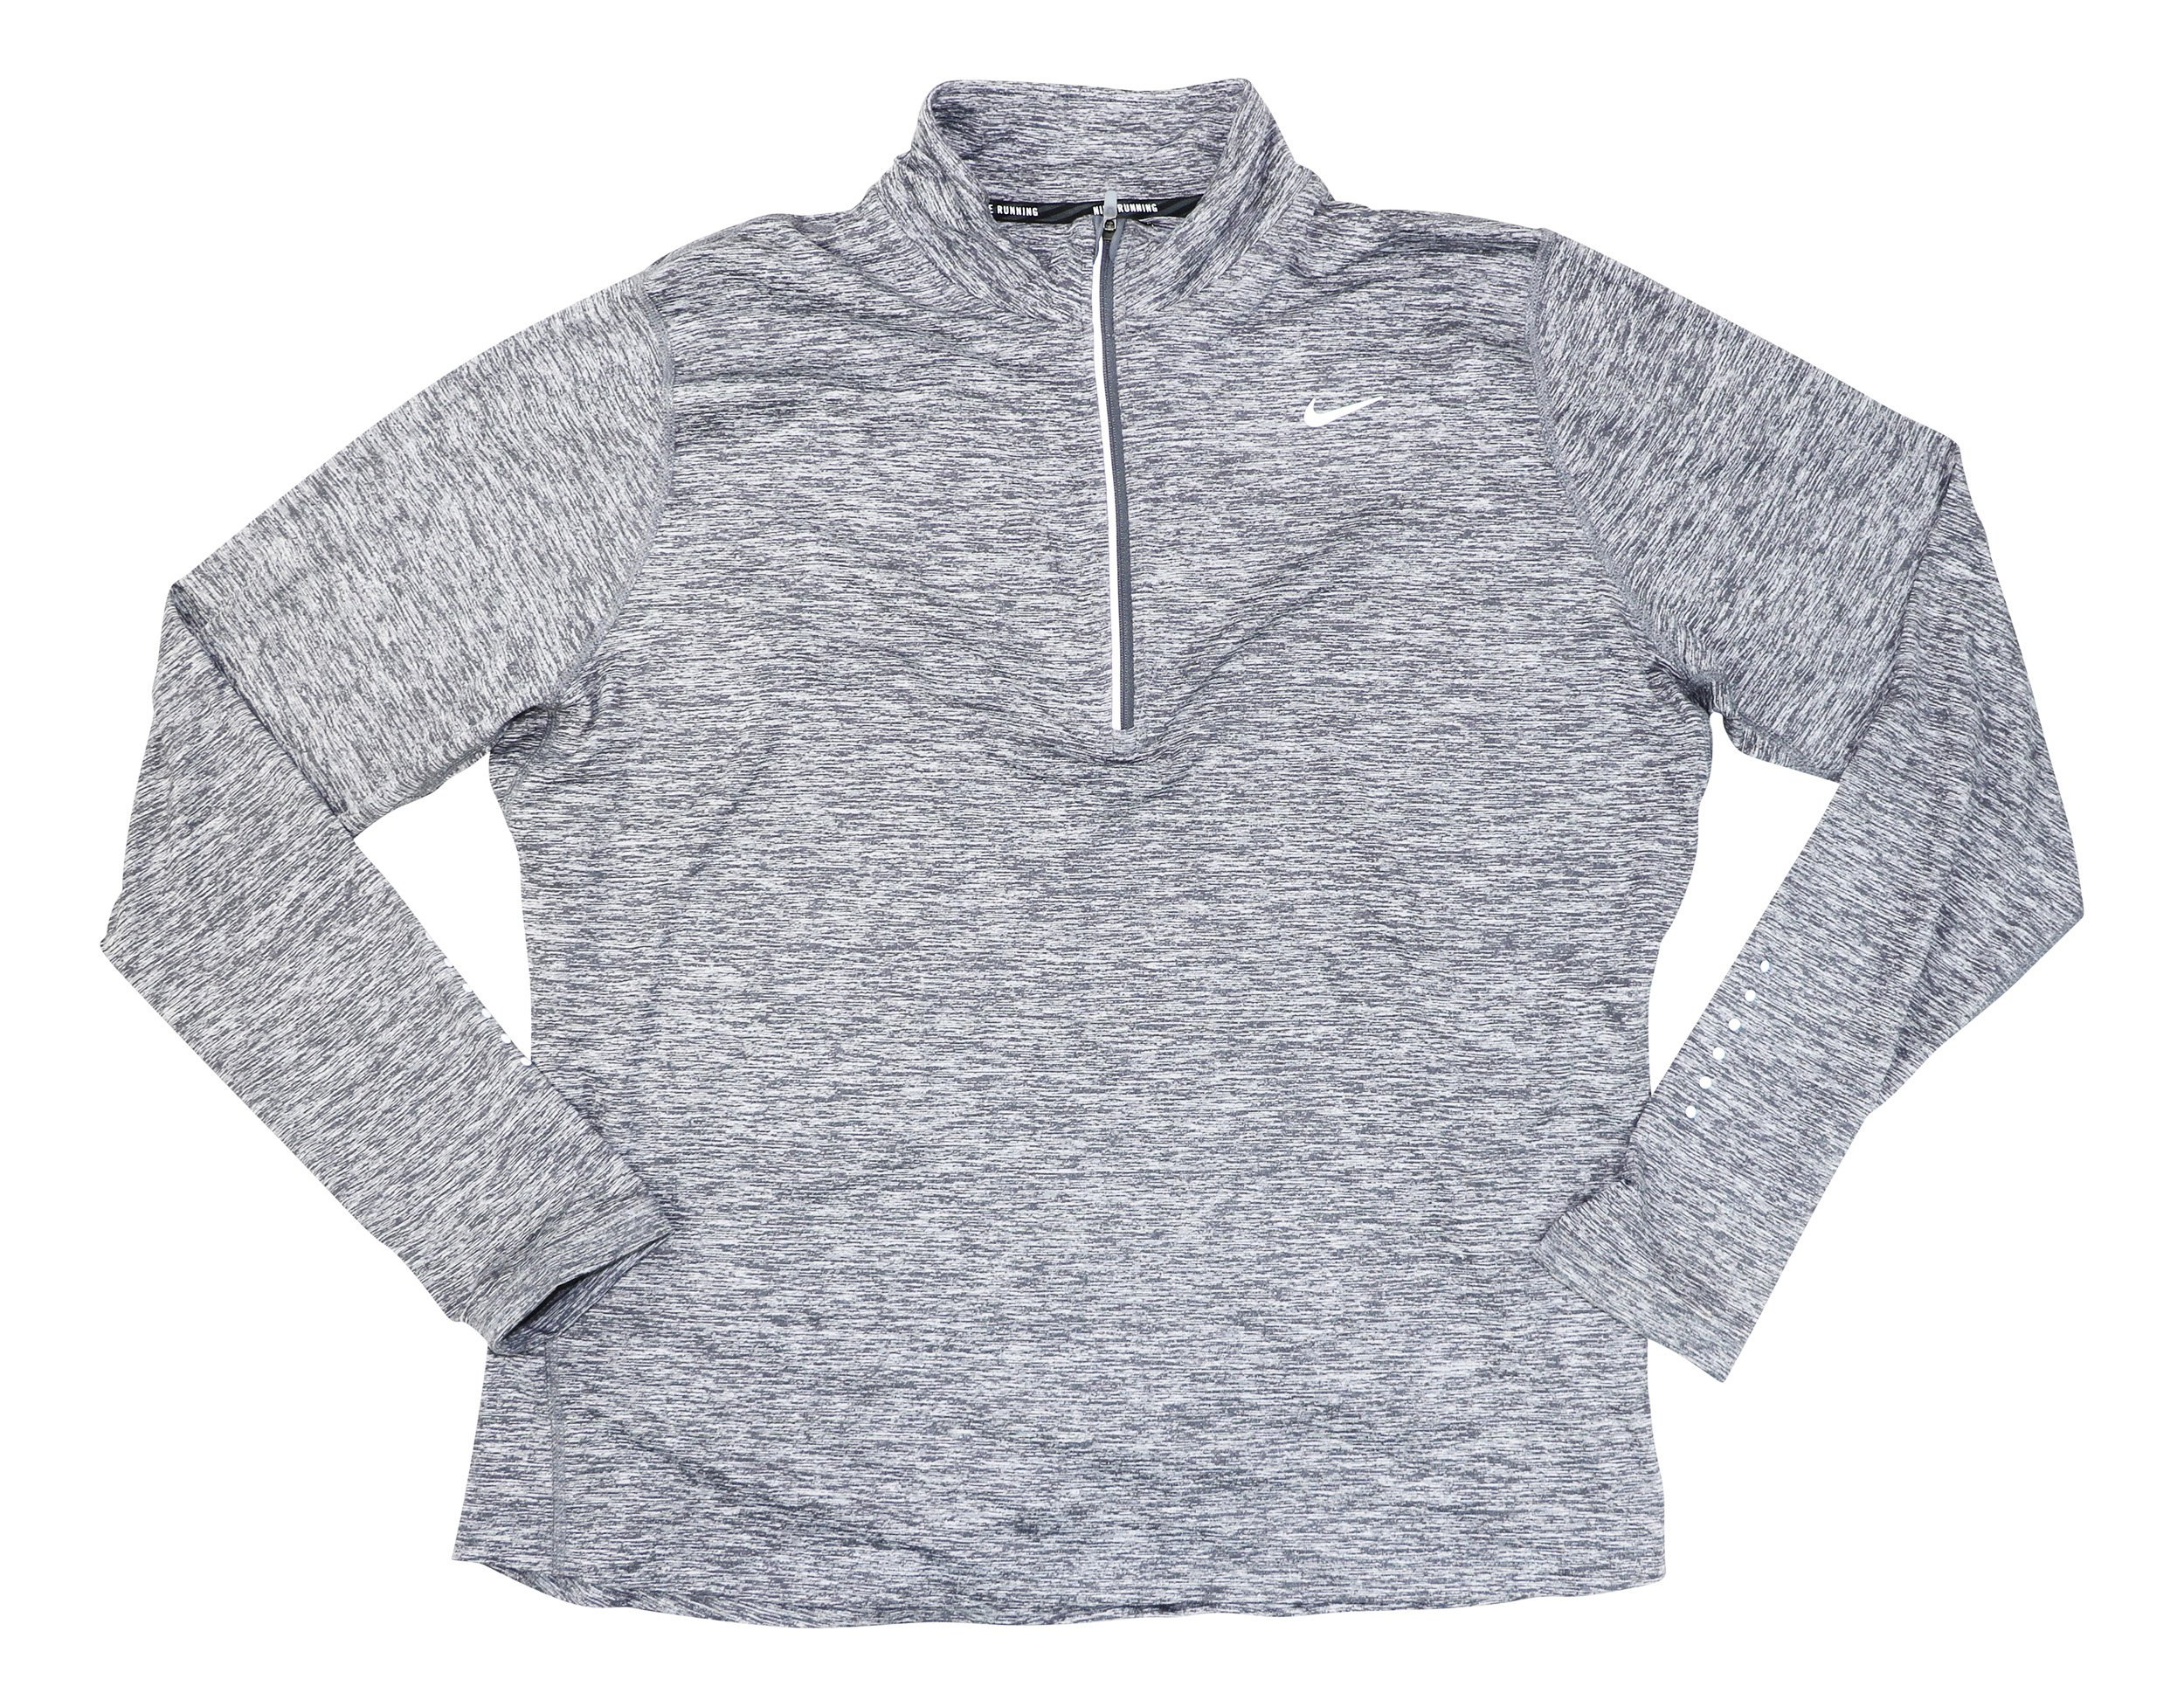 NIKE Womens Plus Dry Element Running Fitness Pullover Top Gray 1X